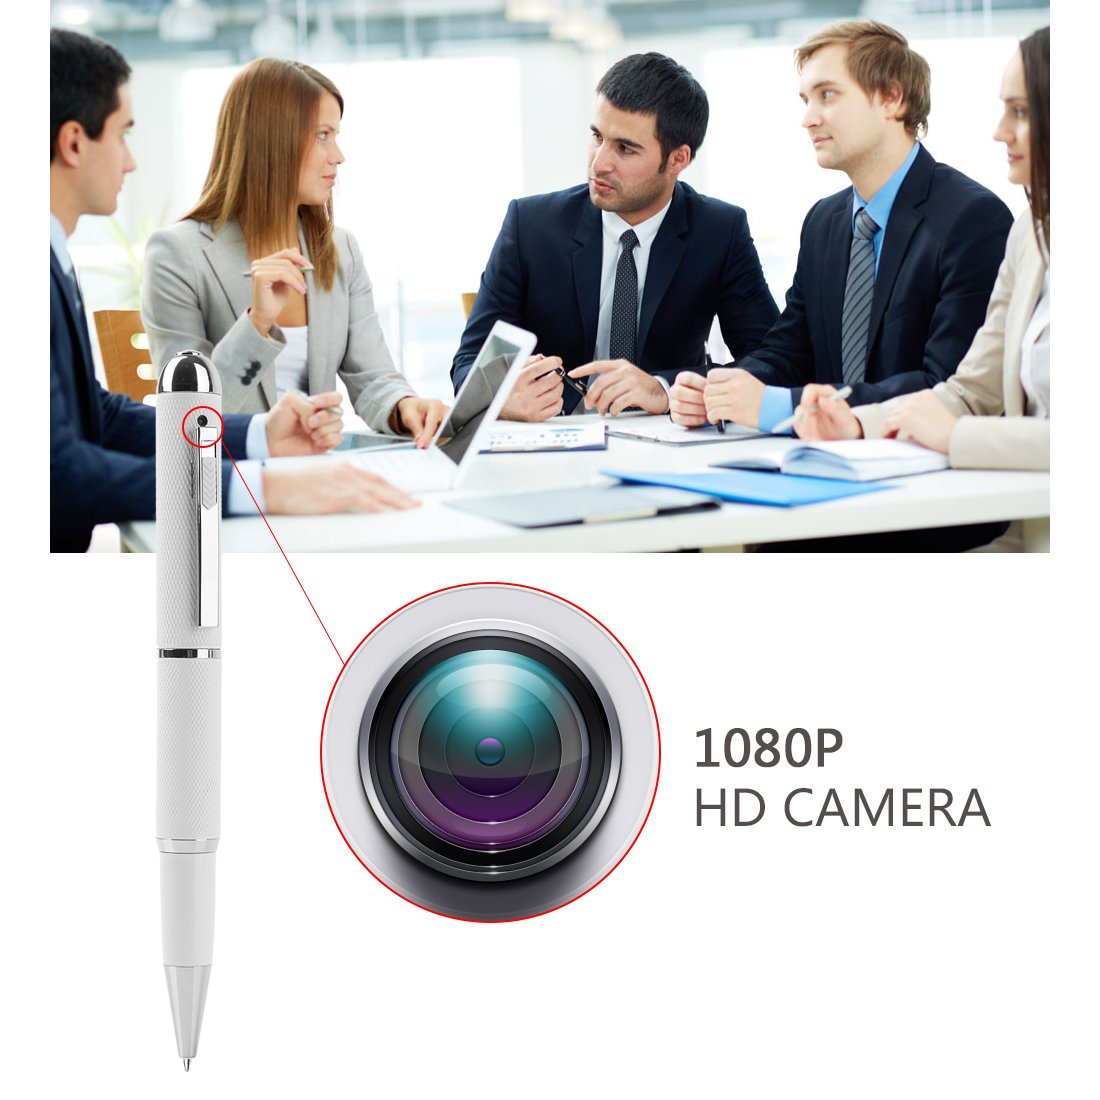 Mini Camera,Real Full HD 1080P Nanny Hidden Spy Pen Cam Home Convert Security Camera Roller Ball -White by GIZGA